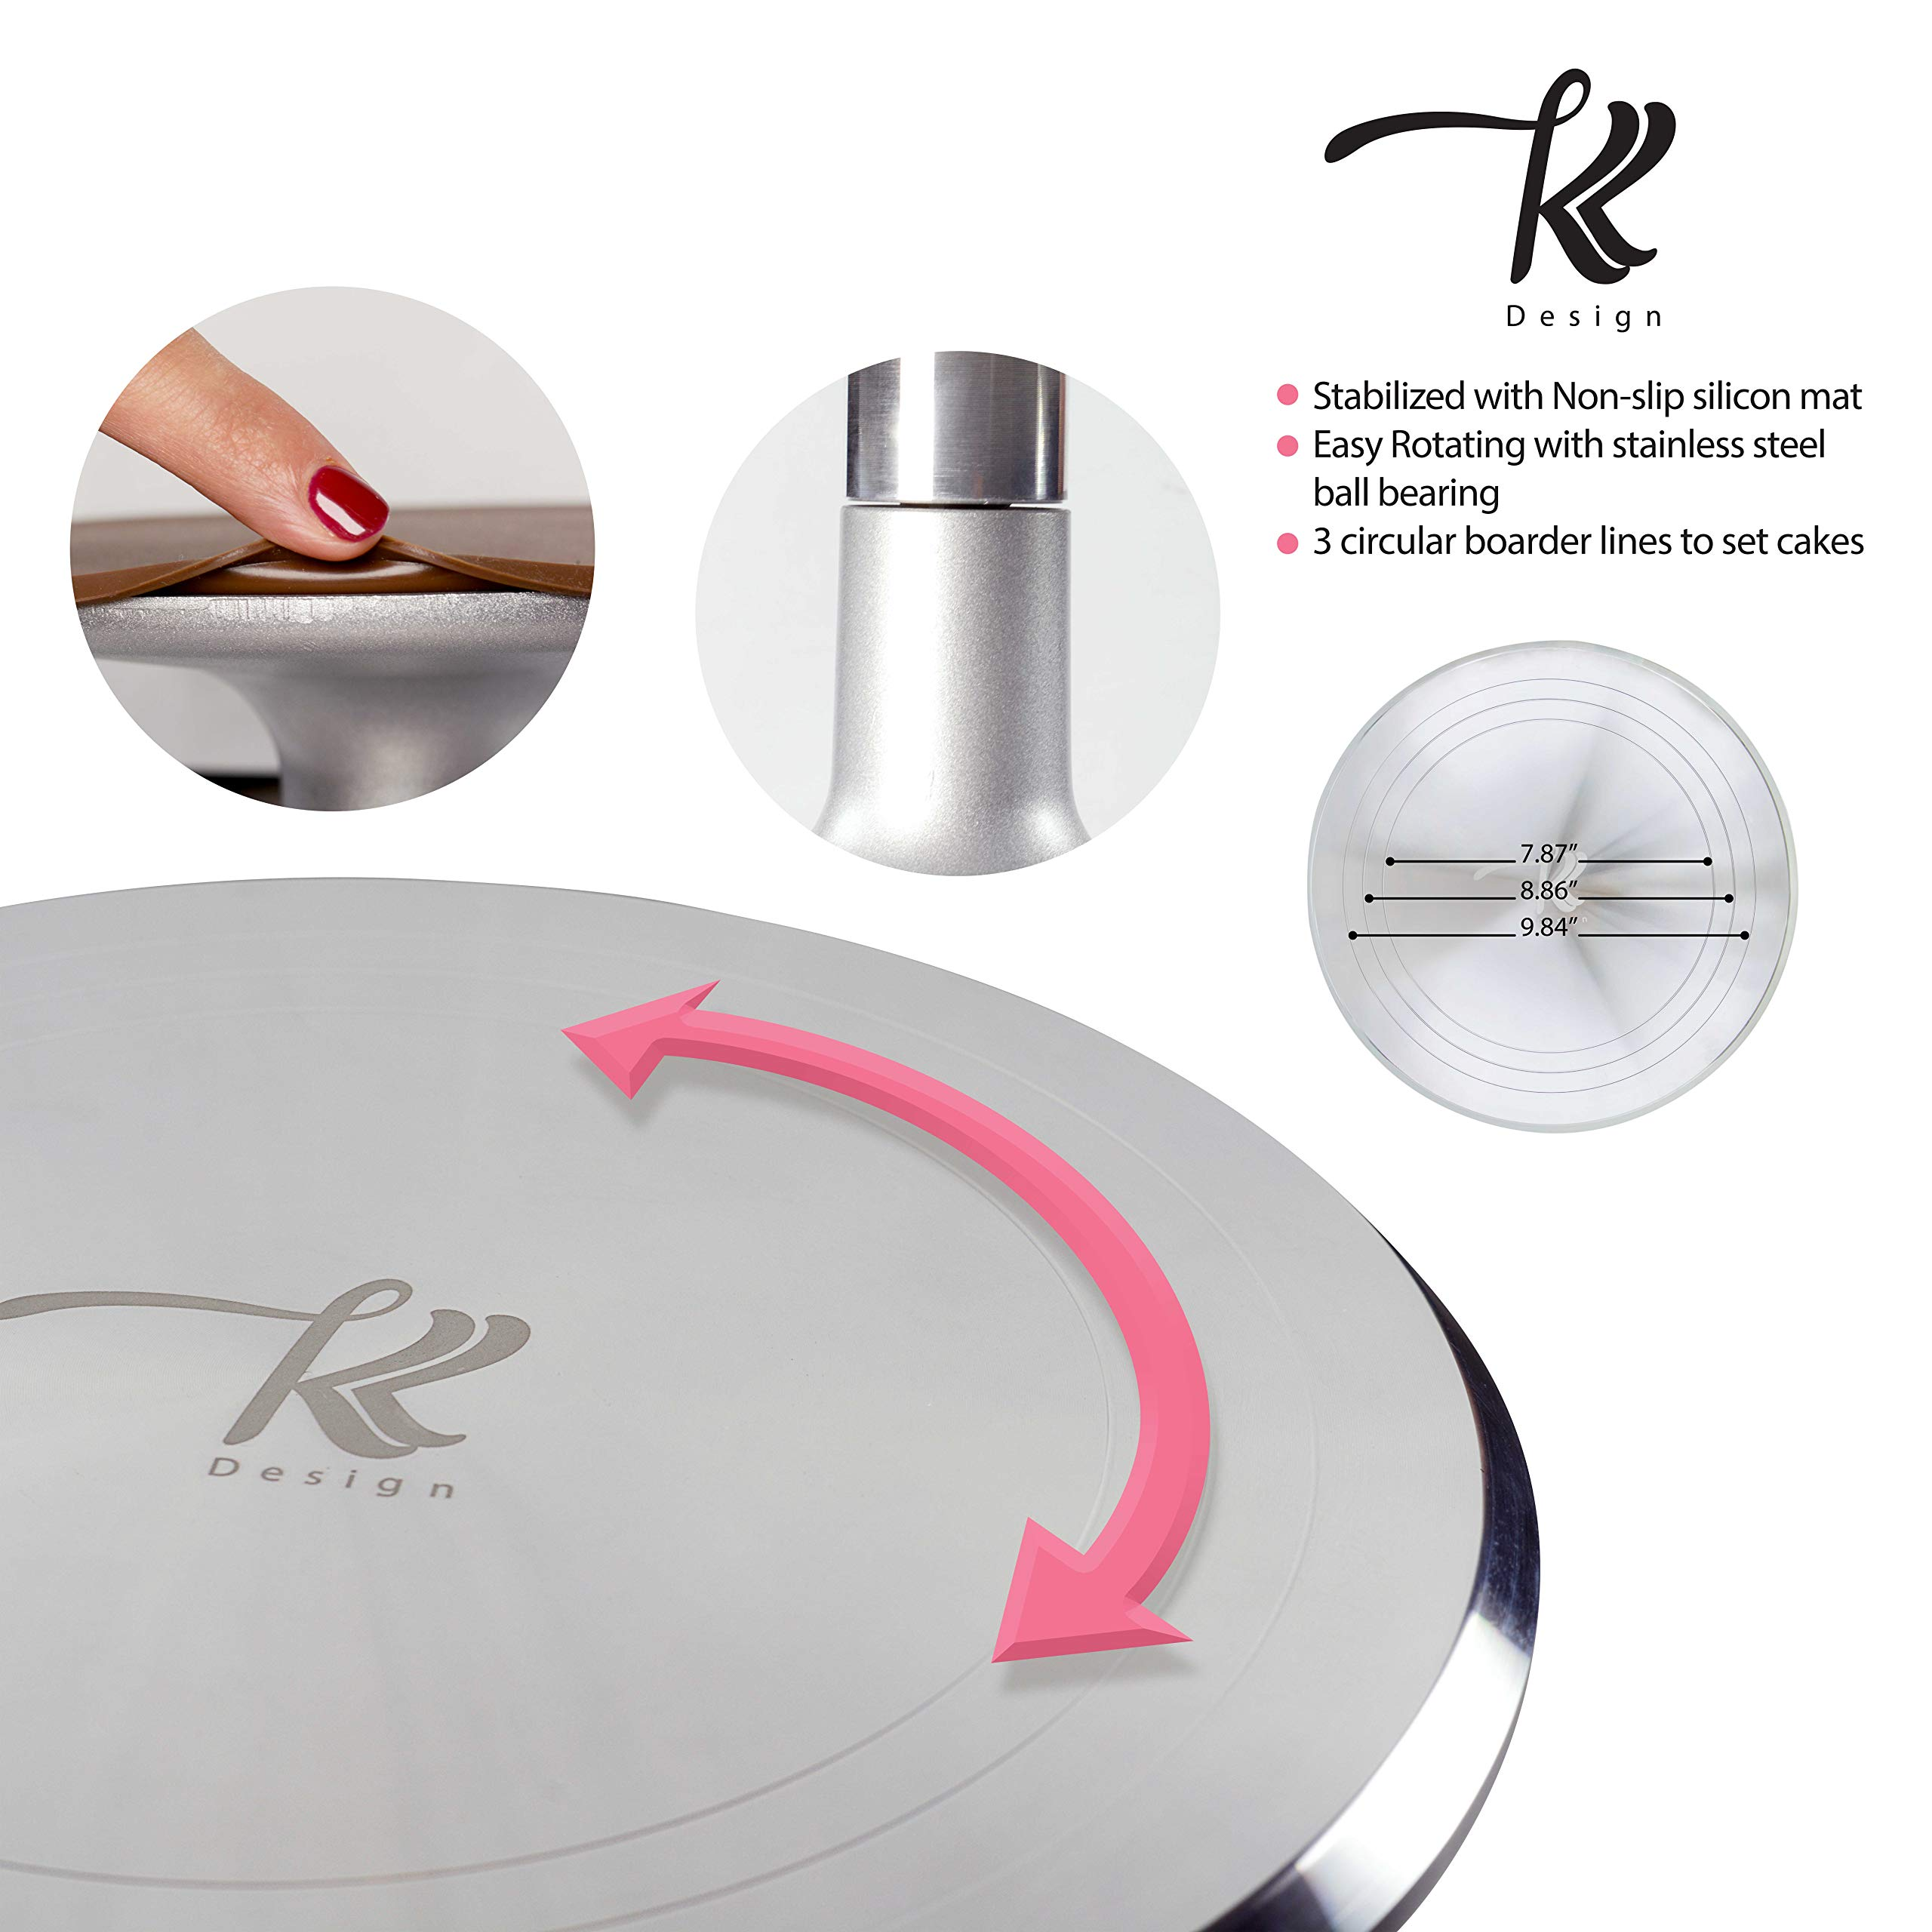 186 Pcs Cake Decorating Supplies Kit,Aluminium Rotating Turntable Stand,Frosting Piping Tips,100 Disposable Bags,Couplers,Scrapers,Spatulas,Cutter,Smoother,Flower Nails,Lifter,Baking Tools Set by K&K Design (Image #4)